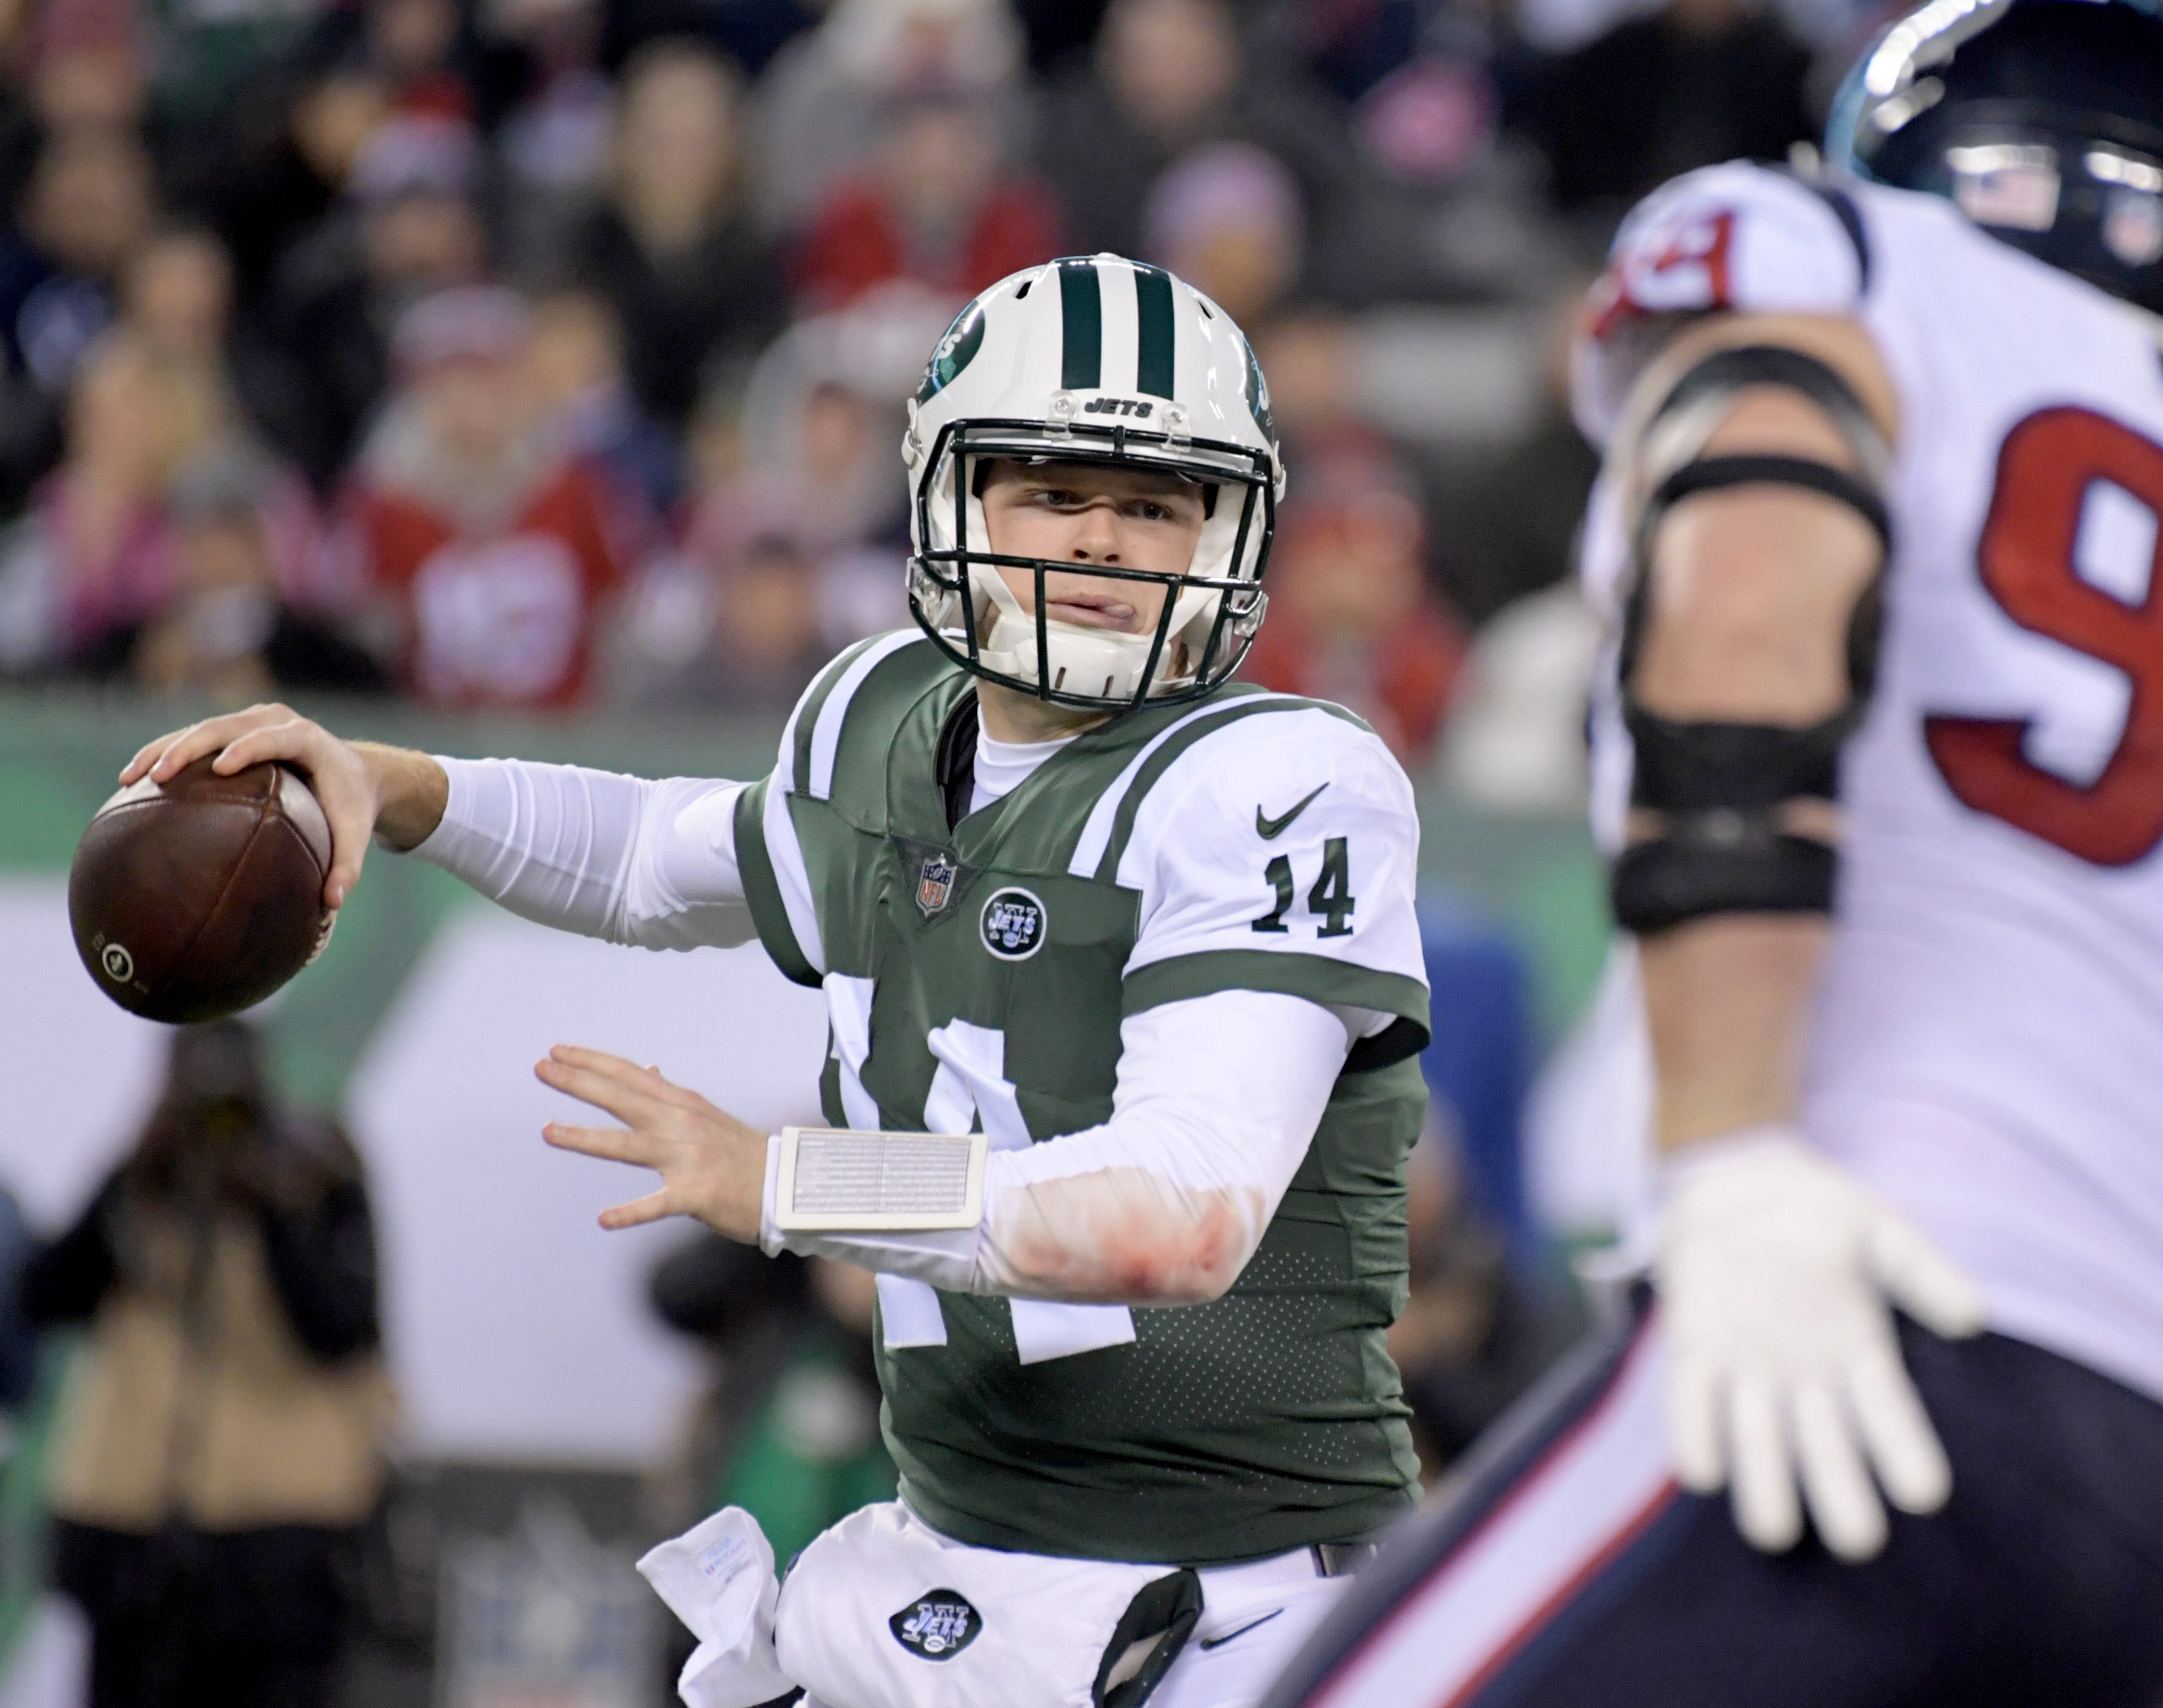 27. Jets (28): They couldn't close against Houston, but Sam Darnold provided further hopes he might really be savior this franchise has waited so long for.